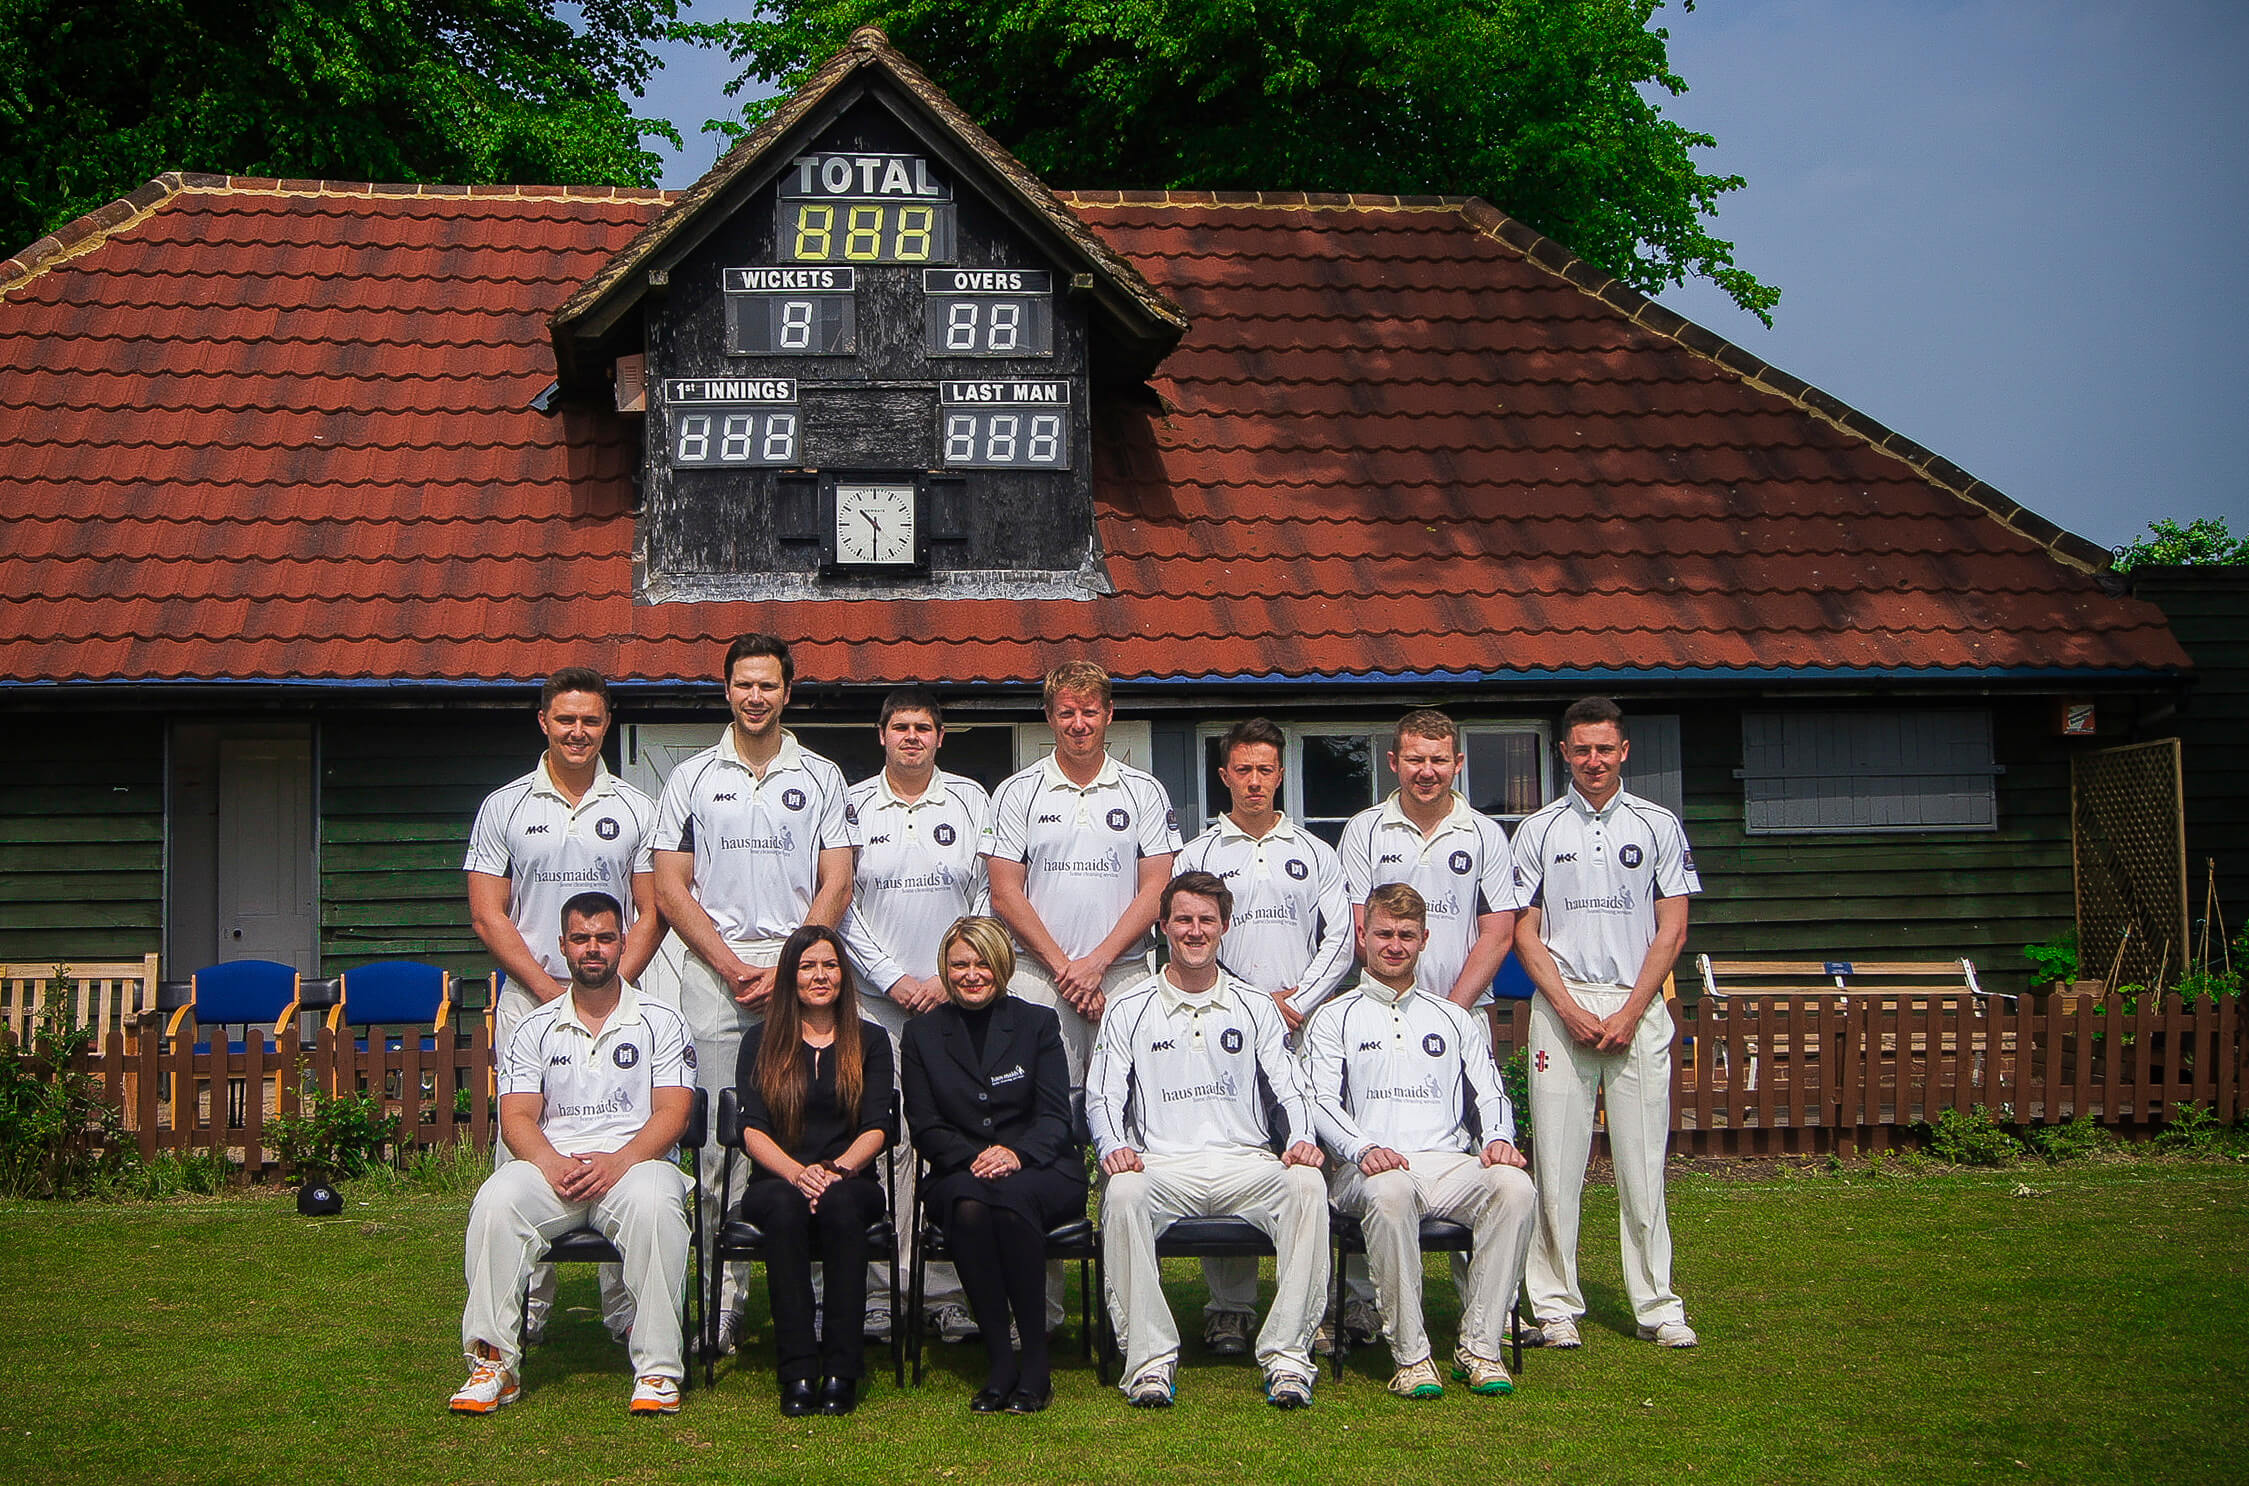 Farnham cricket club photo